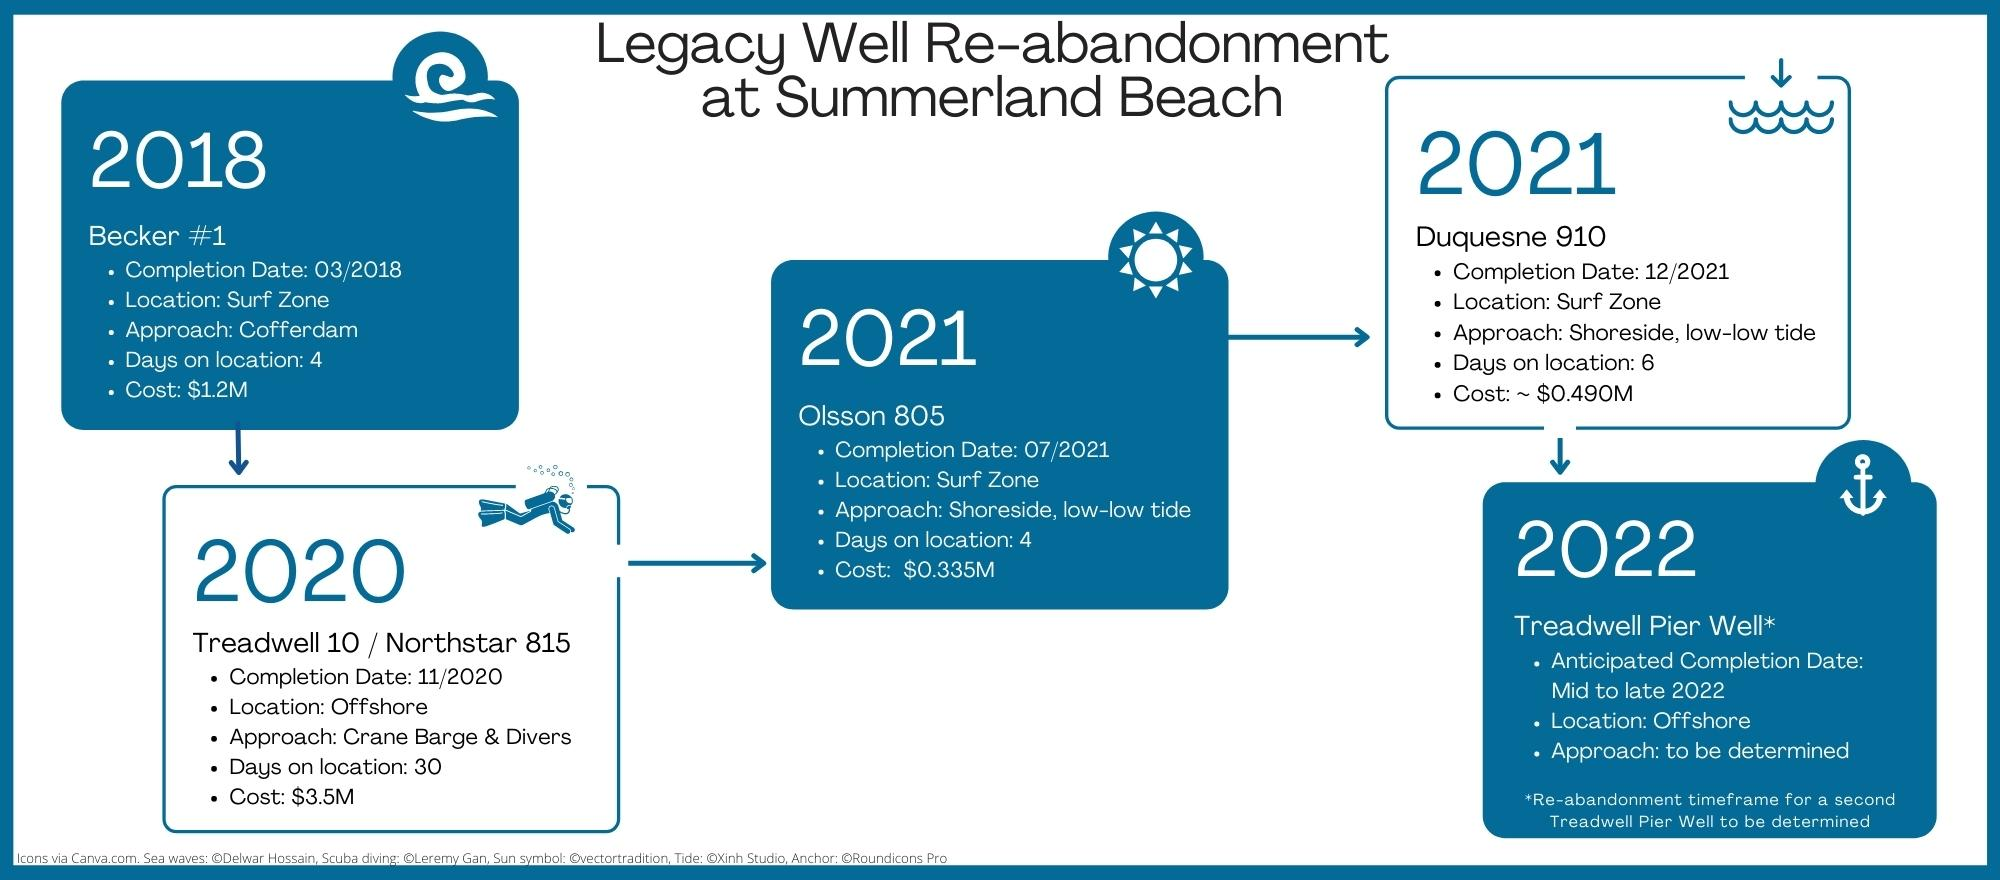 Legacy Well Re-abandonment at Summerland Beach. 2018 Becker Well completion, 2020 Treadwell 10 / Northstar 815 Completion, 2021 Olsson 805 completion and Duquesne 910 anticipated completion, 2022 Treadwell Pier Well anticipated completion.